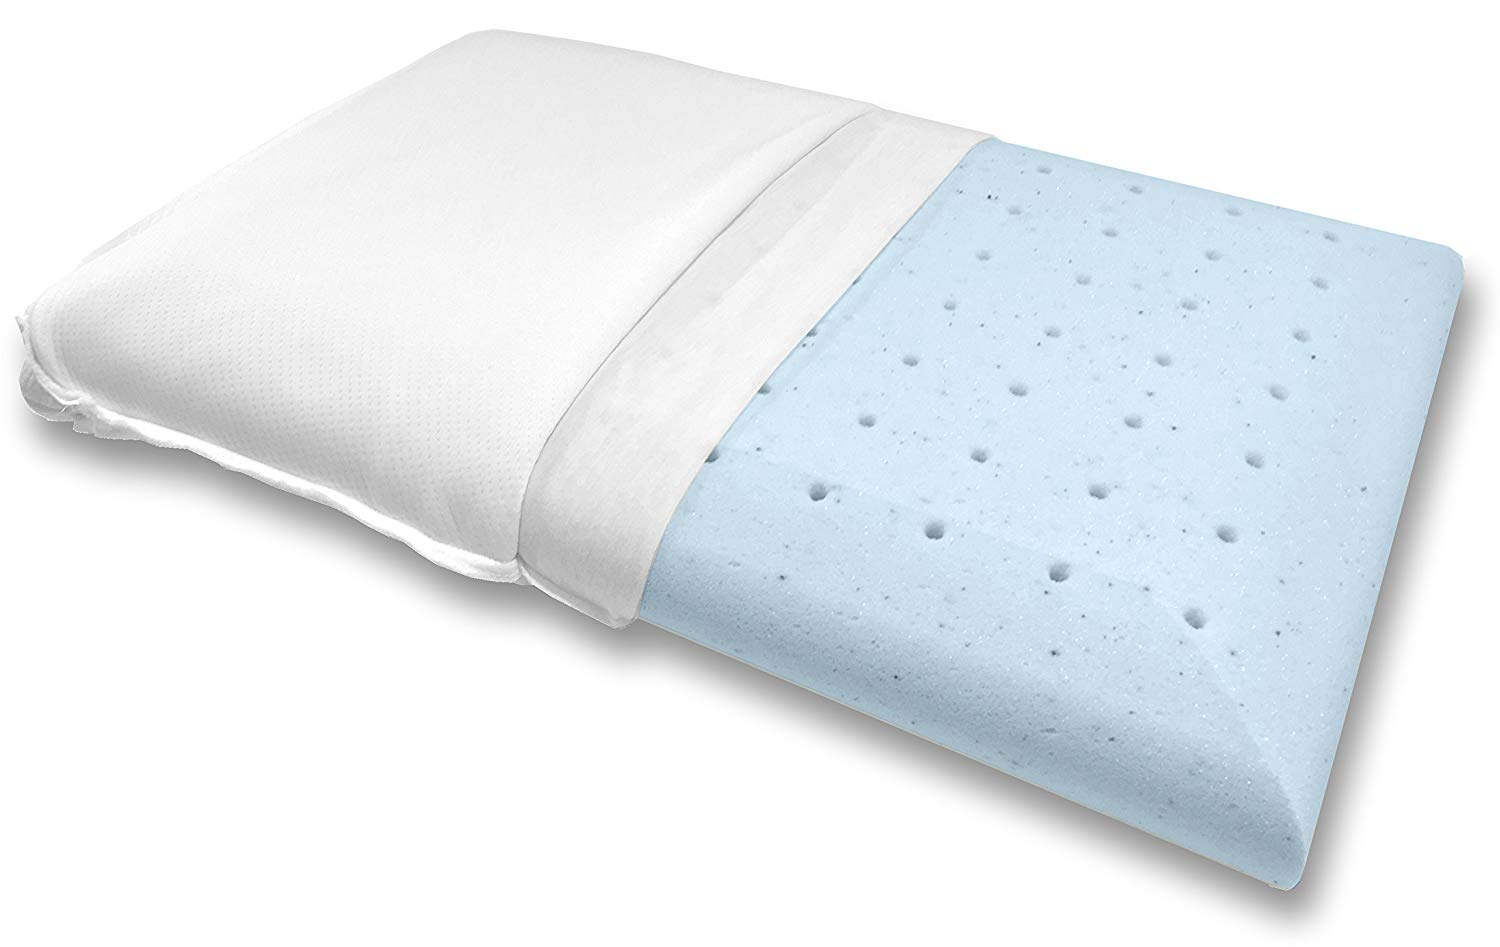 Gel Infused Memory Foam Pillow The Best Pillow For Stomach Sleepers In 2019 Snoremagazine